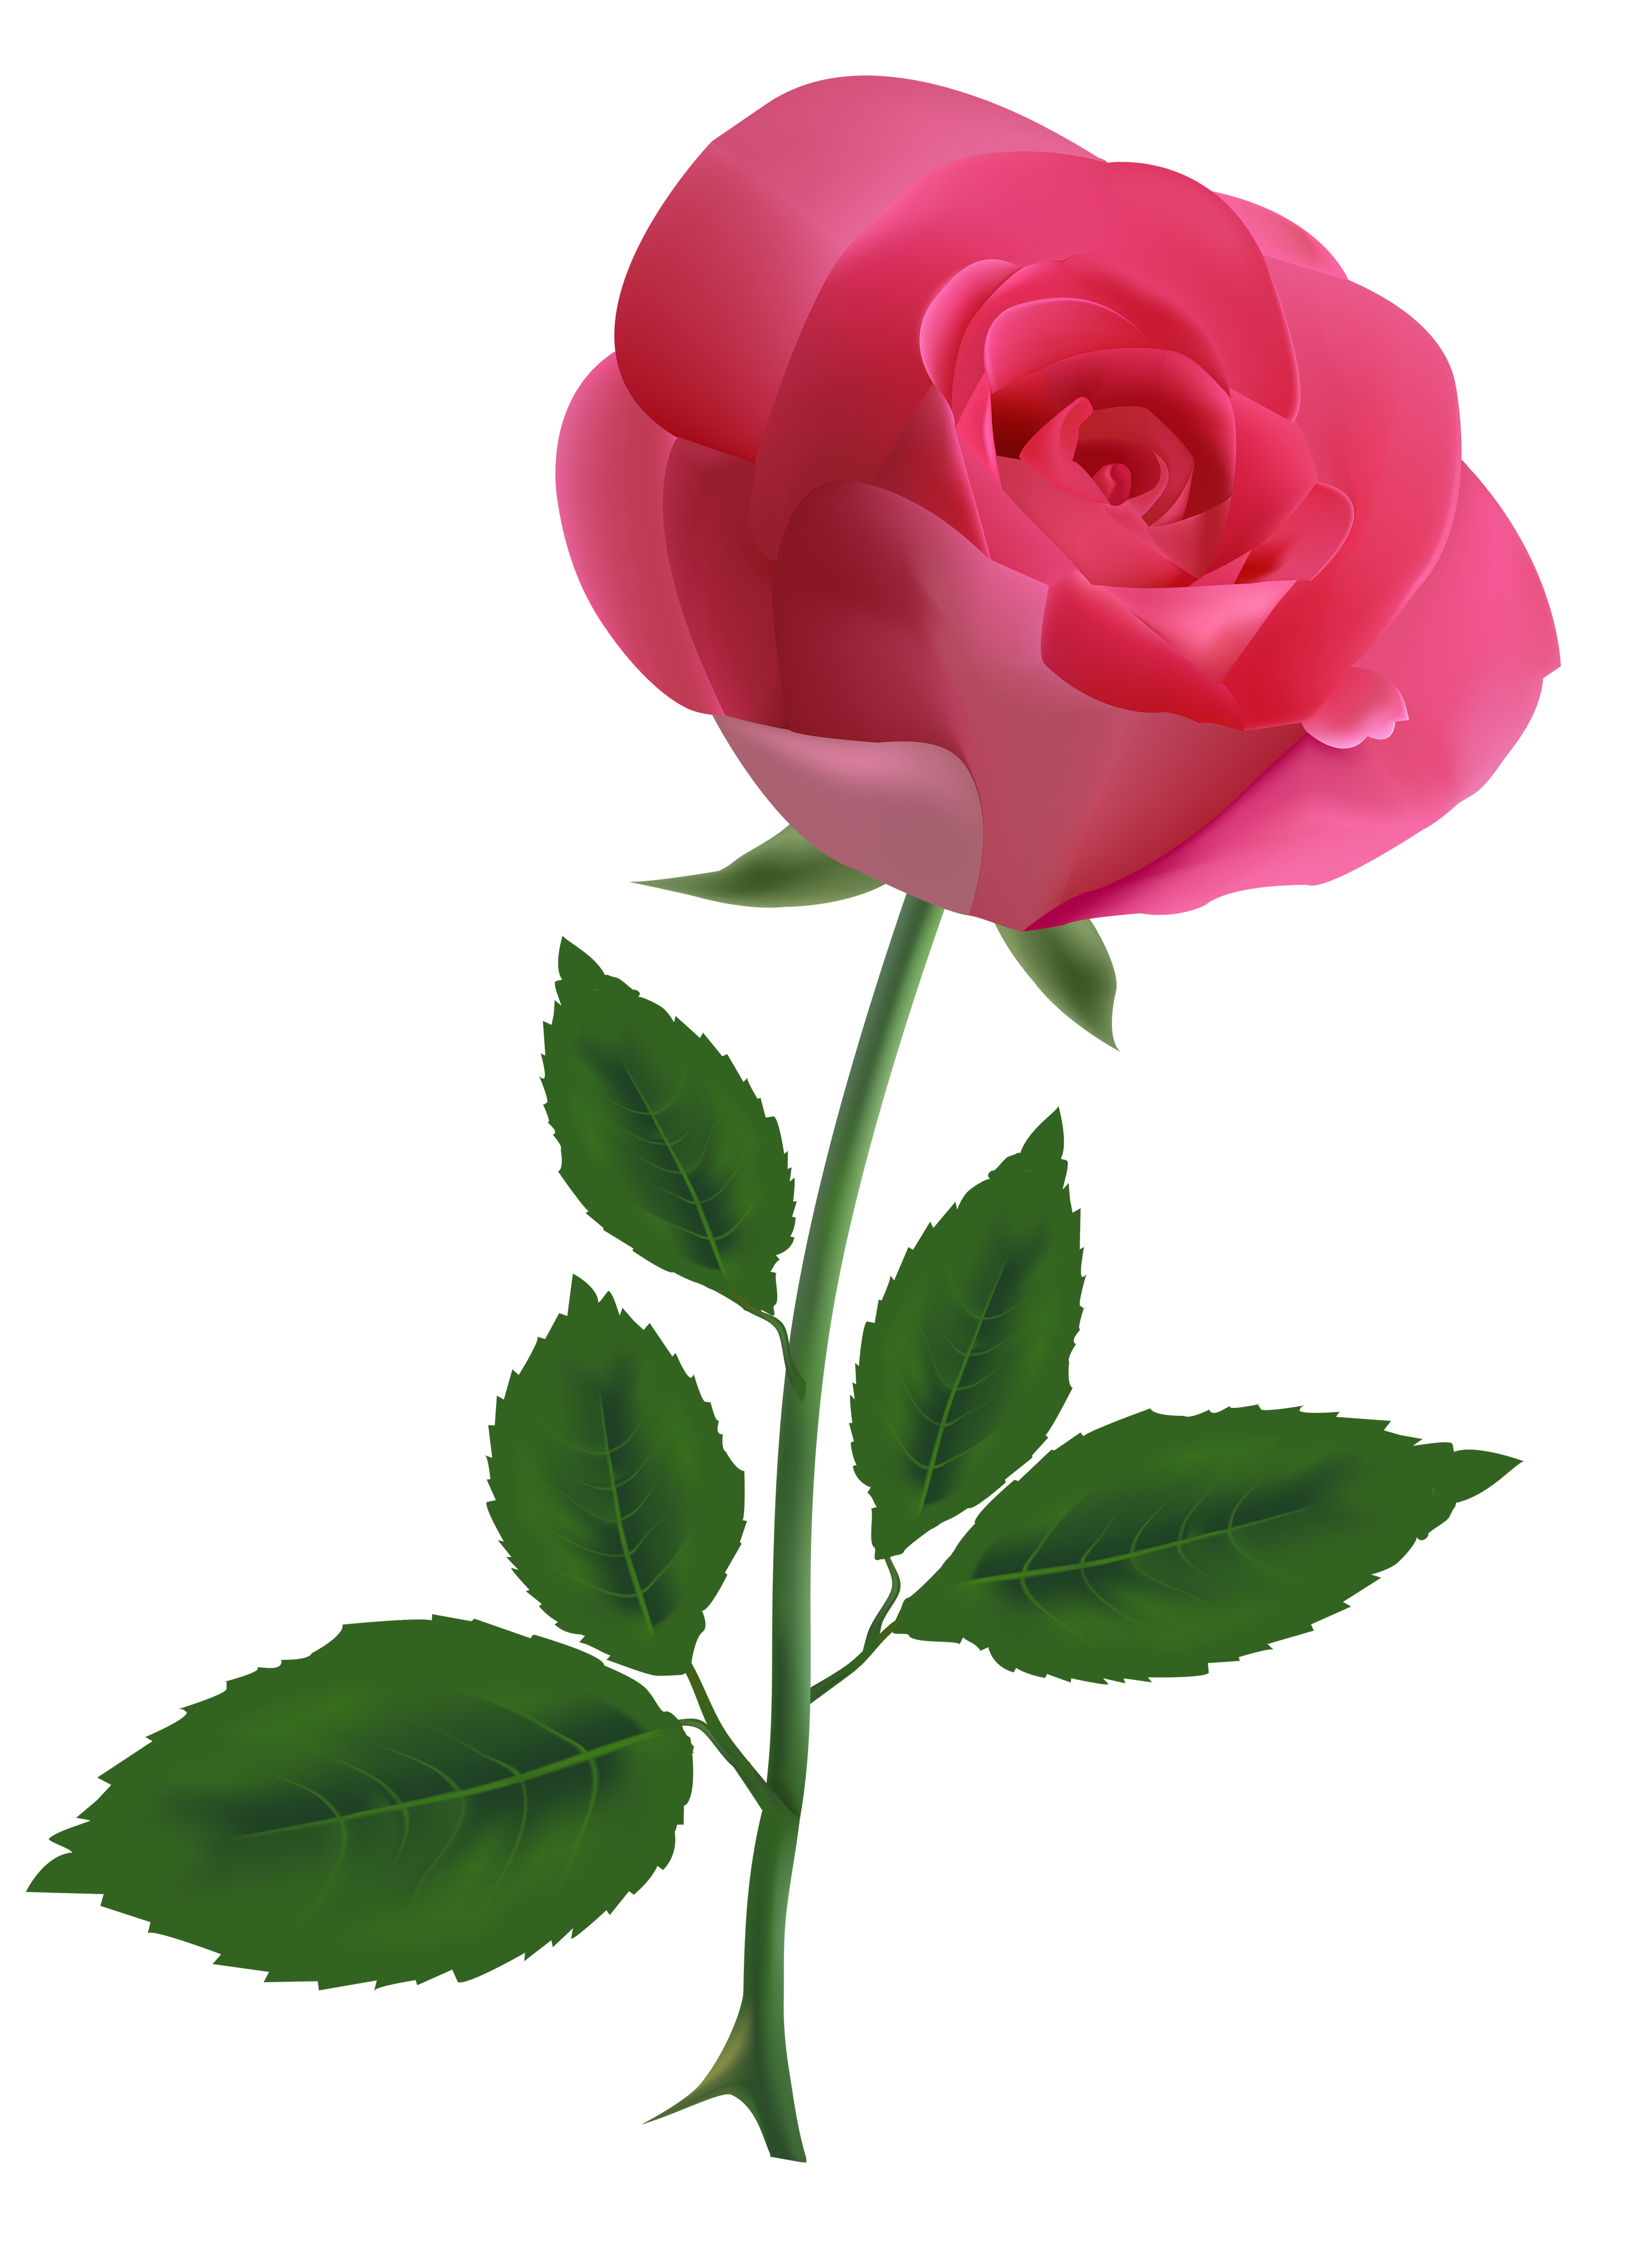 Pink Rose Clipart PNG Image.